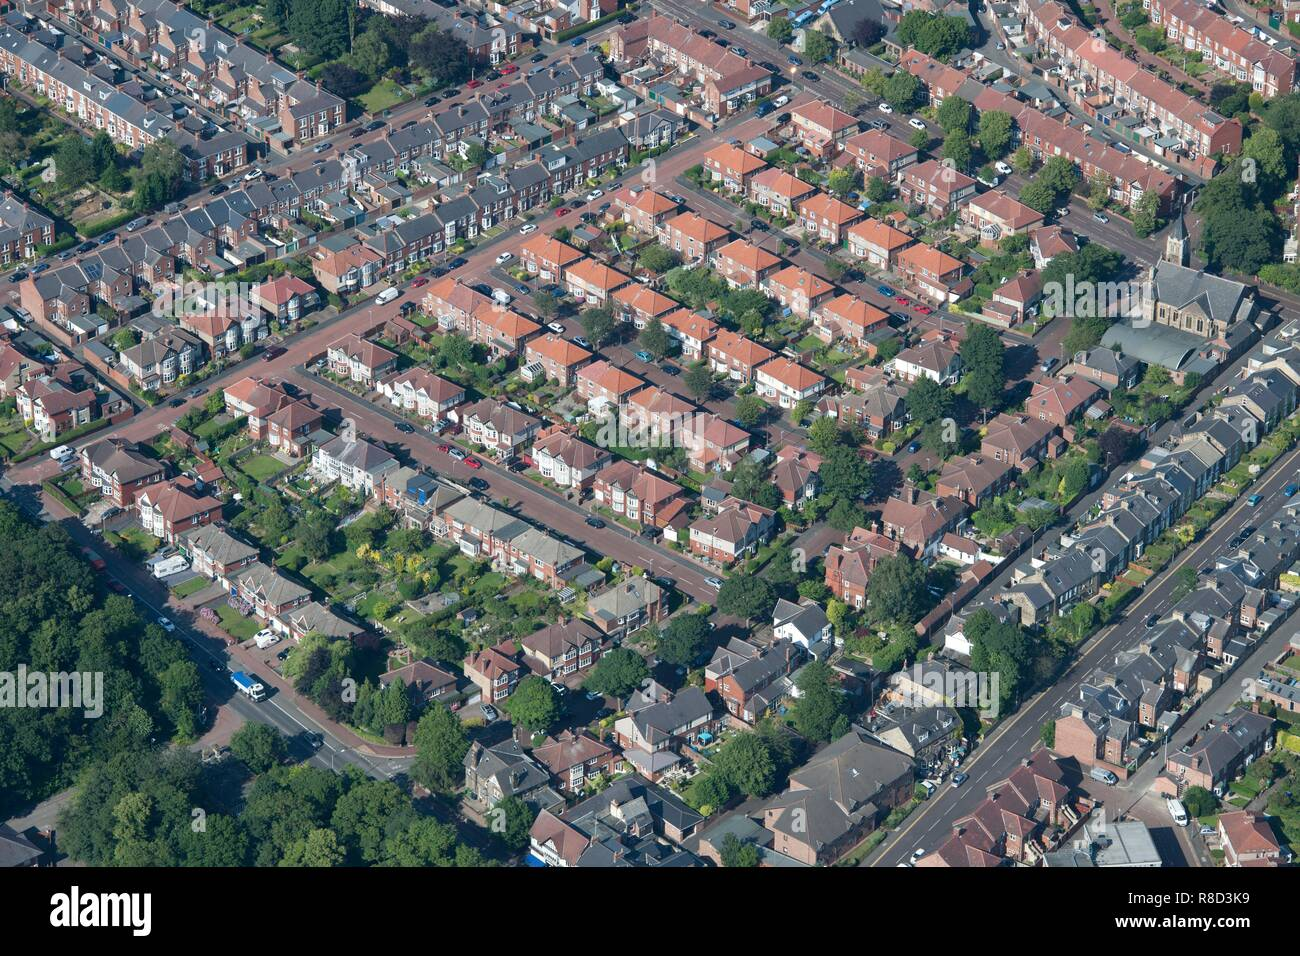 Rows of semi-detached houses, Gateshead, Tyne and Wear, 2015. - Stock Image